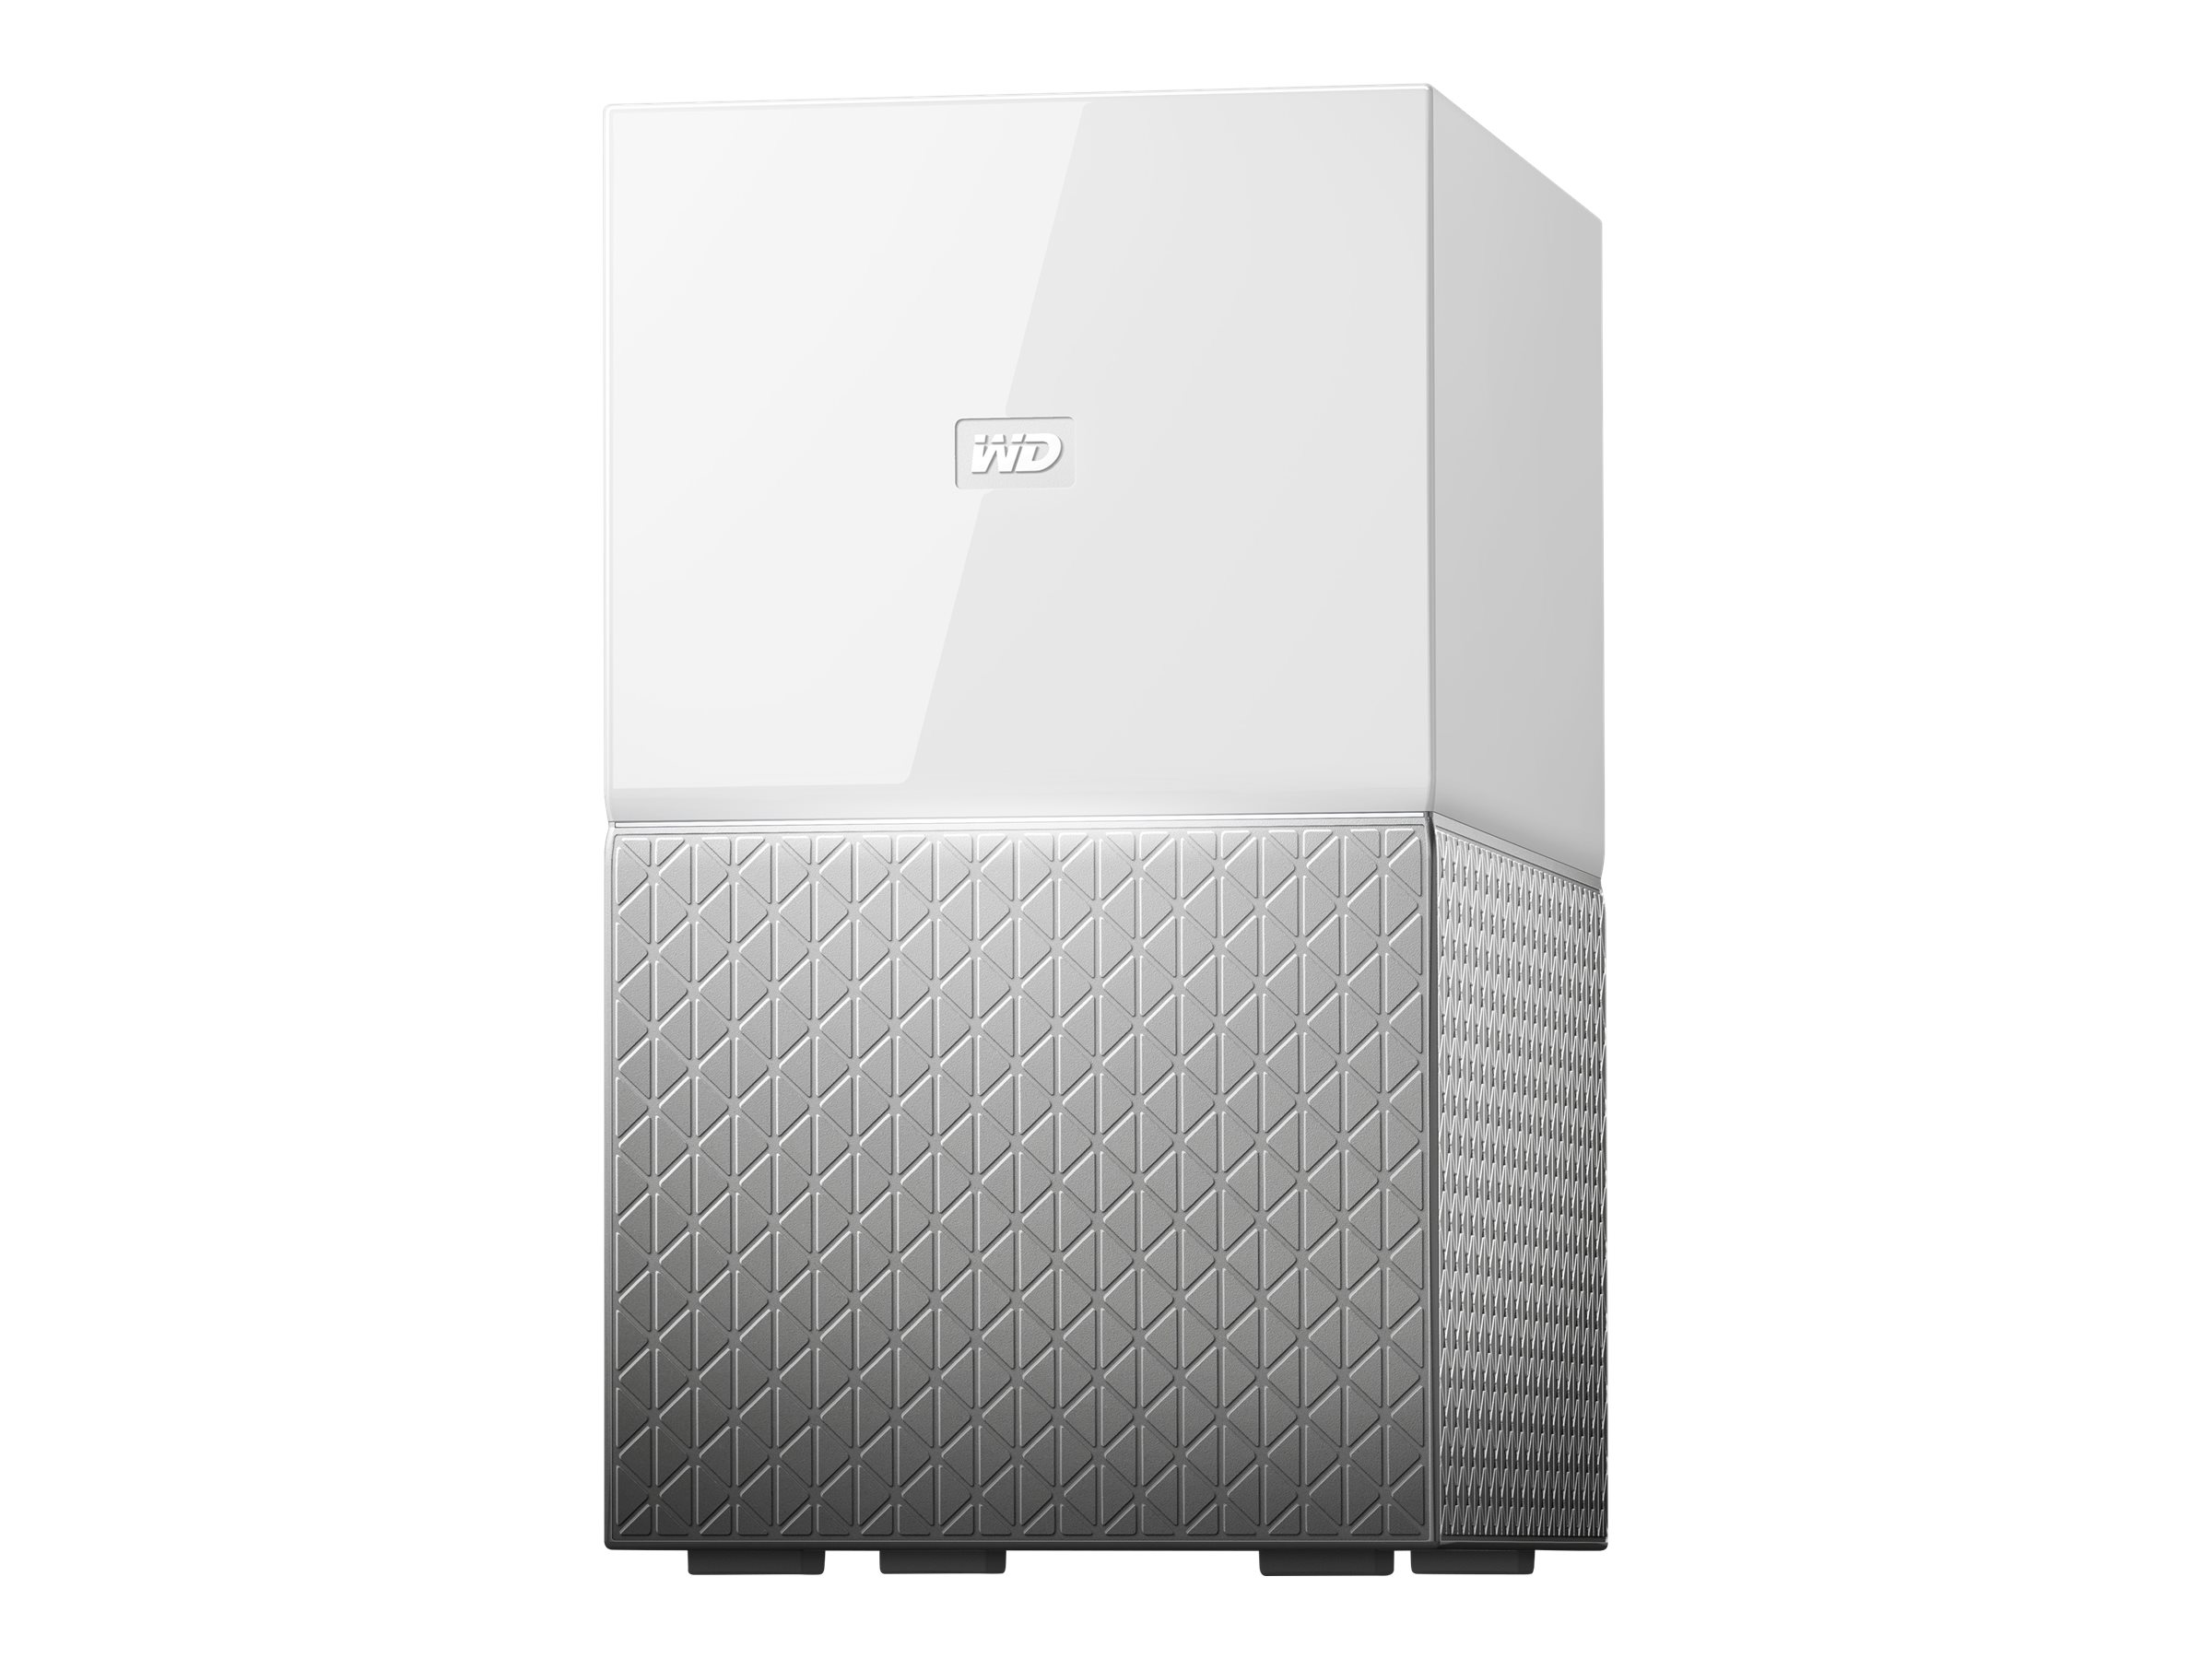 WD My Cloud Home Duo WDBMUT0060JWT - Ger?t f?r pers?nlichen Cloudspeicher